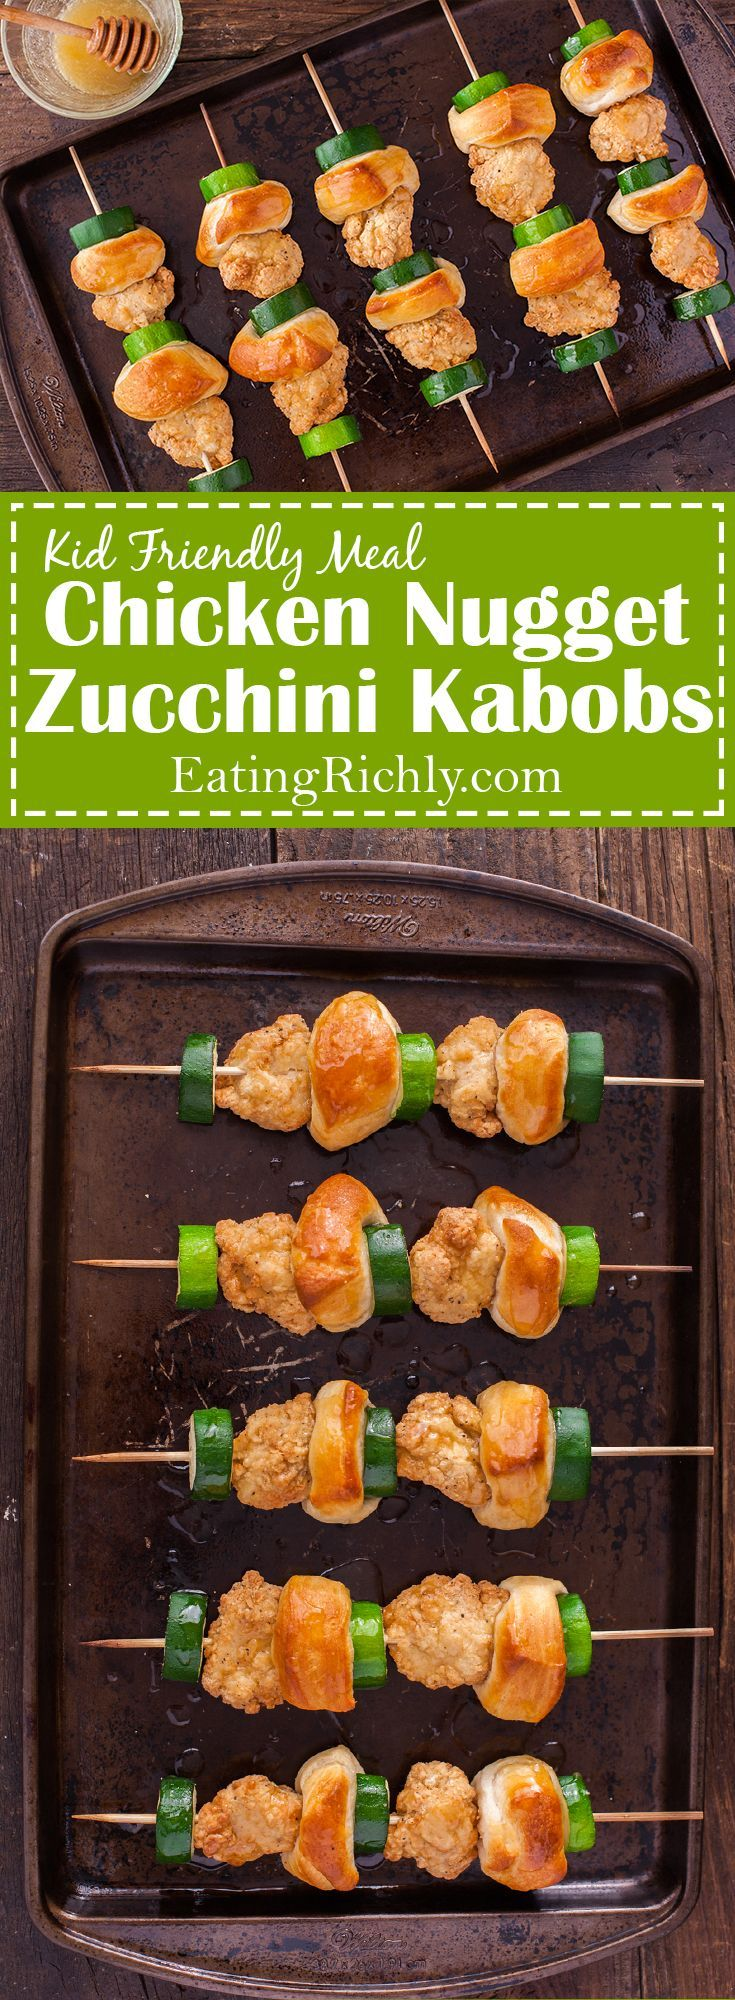 These zucchini, biscuit, and chicken nugget kabobs are a kid friendly meal that your little ones will love to help make. Part of #MiniChefMondays on EatingRichly.com